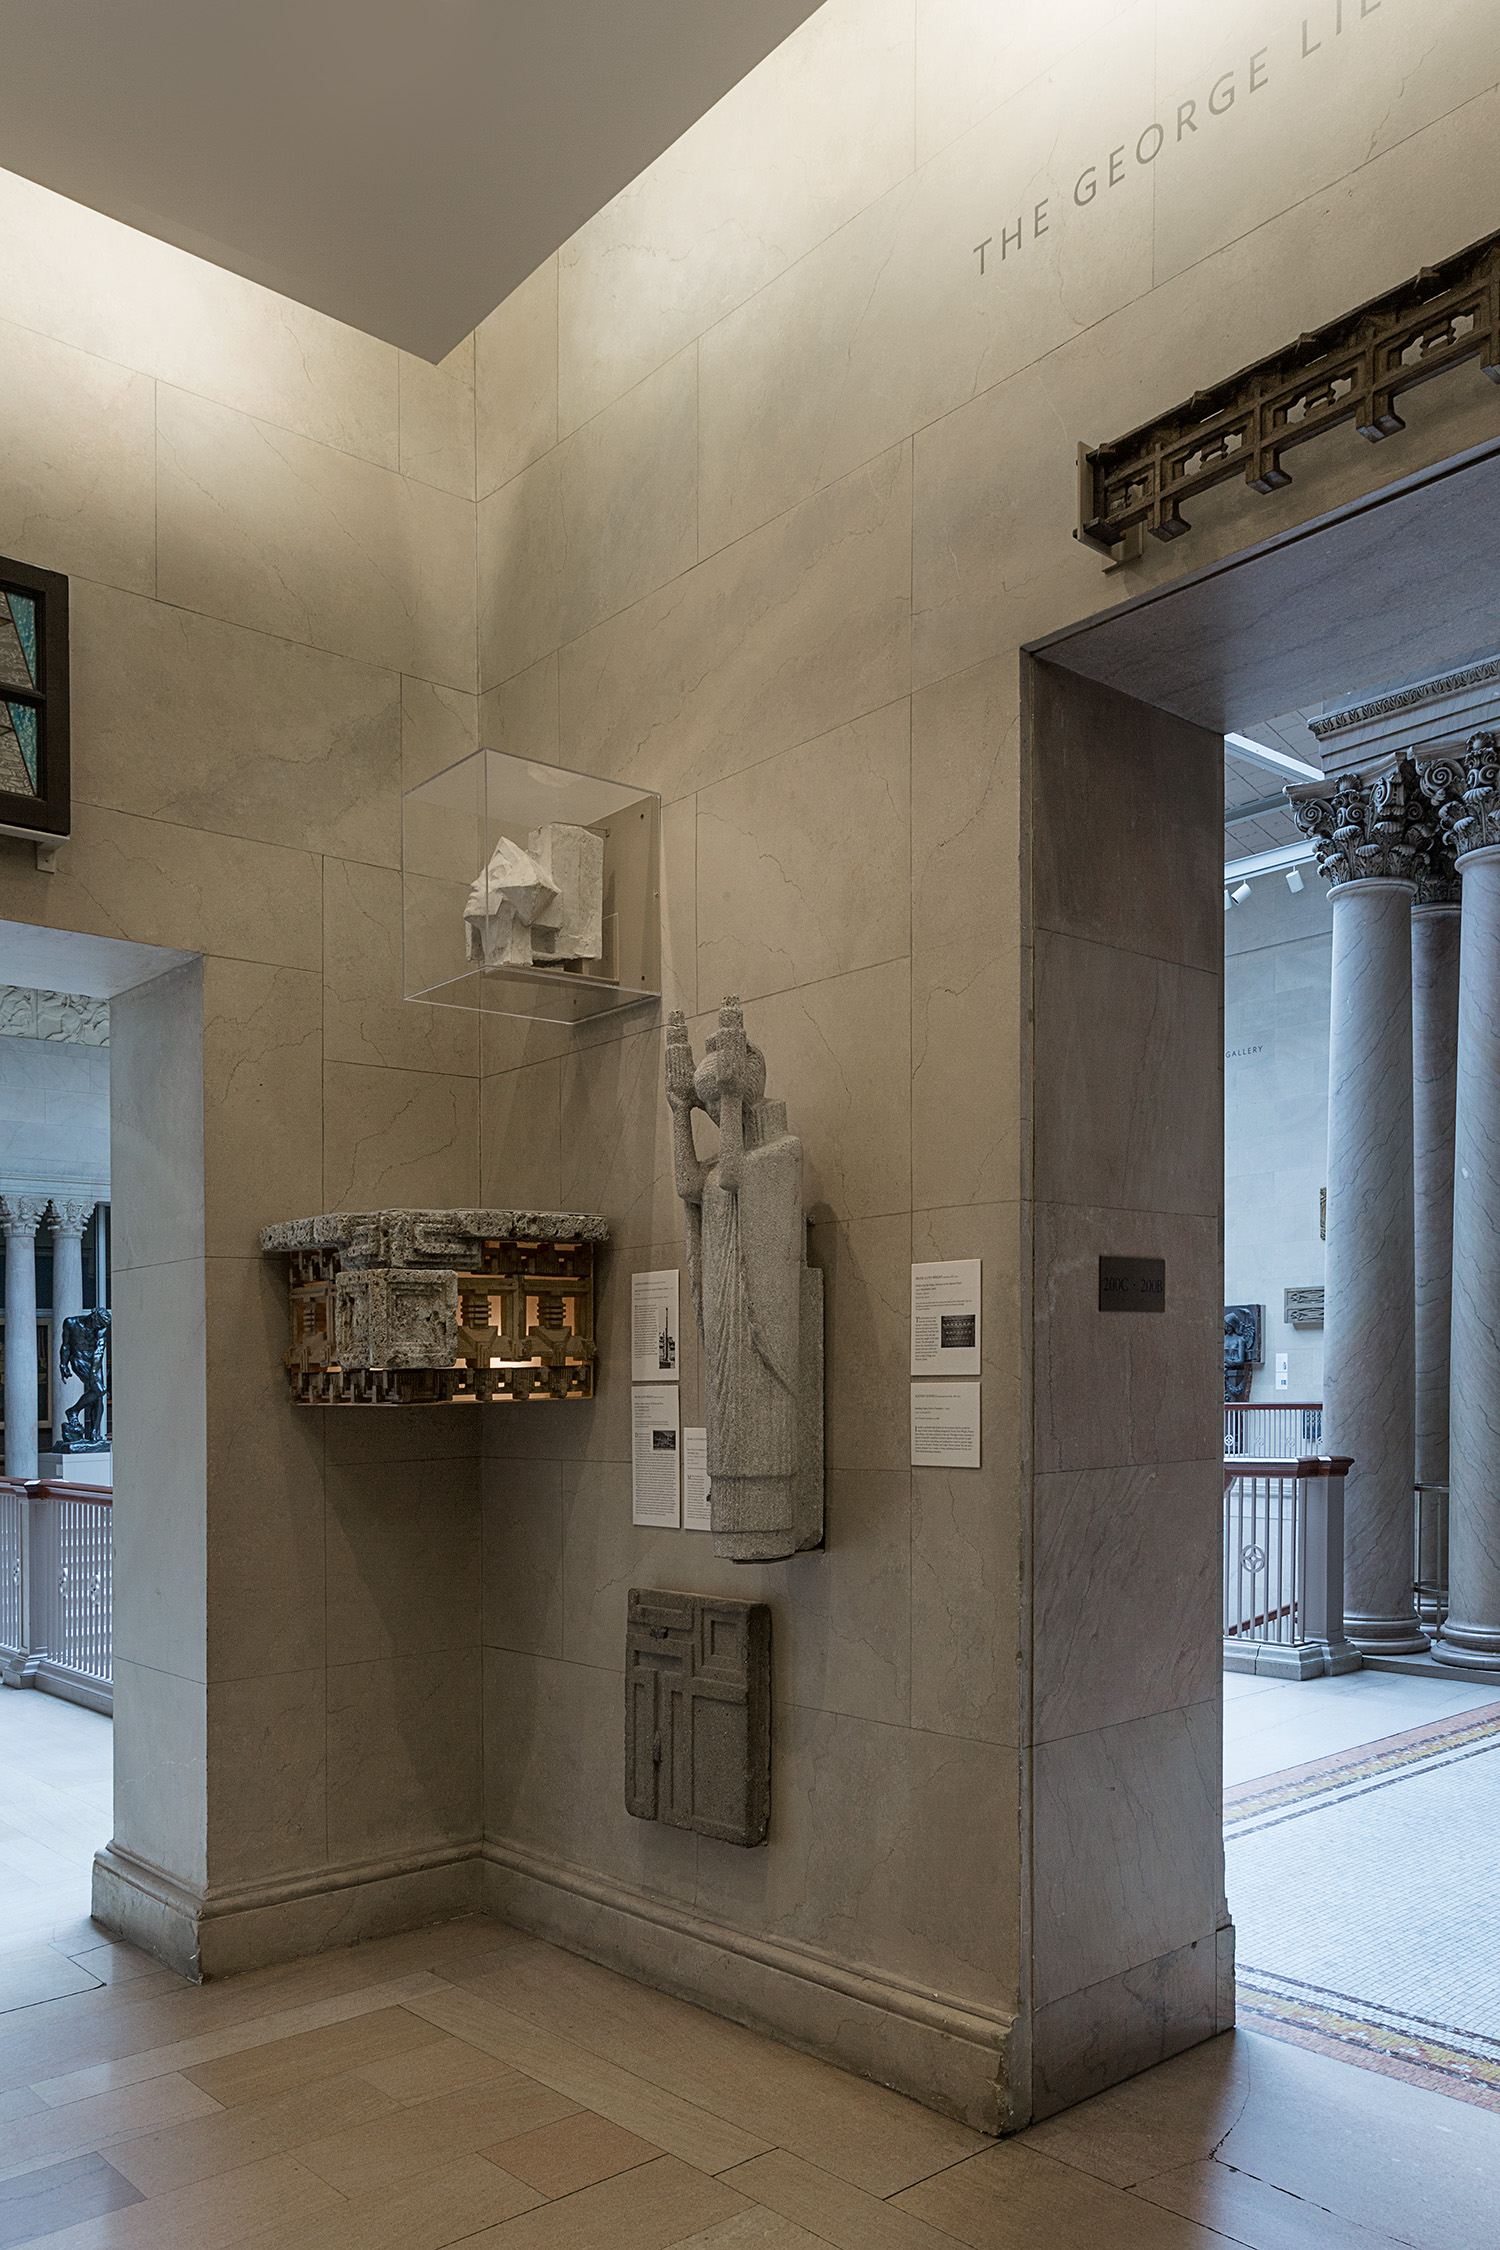 Art Institute of Chicago : Early Chicago Architectual Fragments